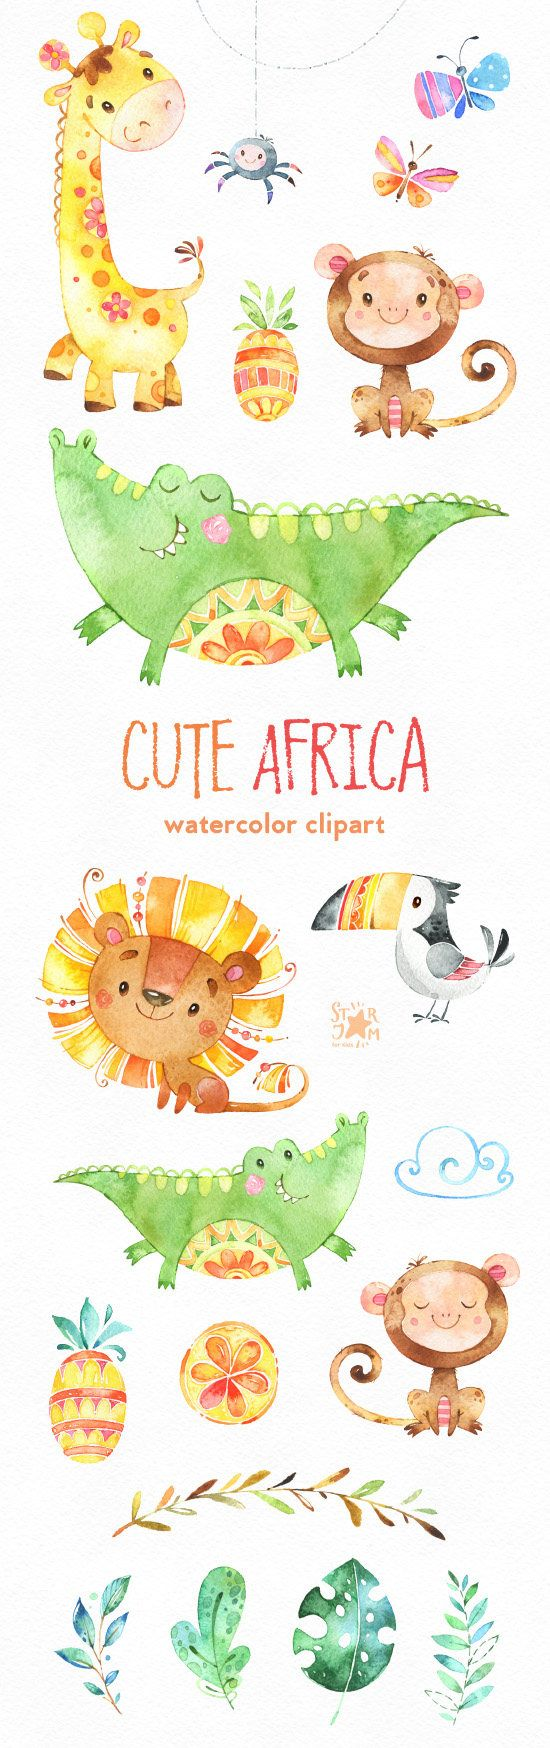 This cute African animals watercolor set is just what you needed for the perfect invitations, craft projects, paper products, party decorations, printable, greetings cards, posters, stationery, scrapbooking, stickers, t-shirts, baby clothes, web designs and much more.  :::::: DETAILS ::::::  This collection includes: - 21 Images in separate PNG files, transparent background, size approx.: 13-4.6in (4000-1400px)  300 dpi RGB  ::::: TERMS OF USE :::::  ► Personal or non-profit  You can use…